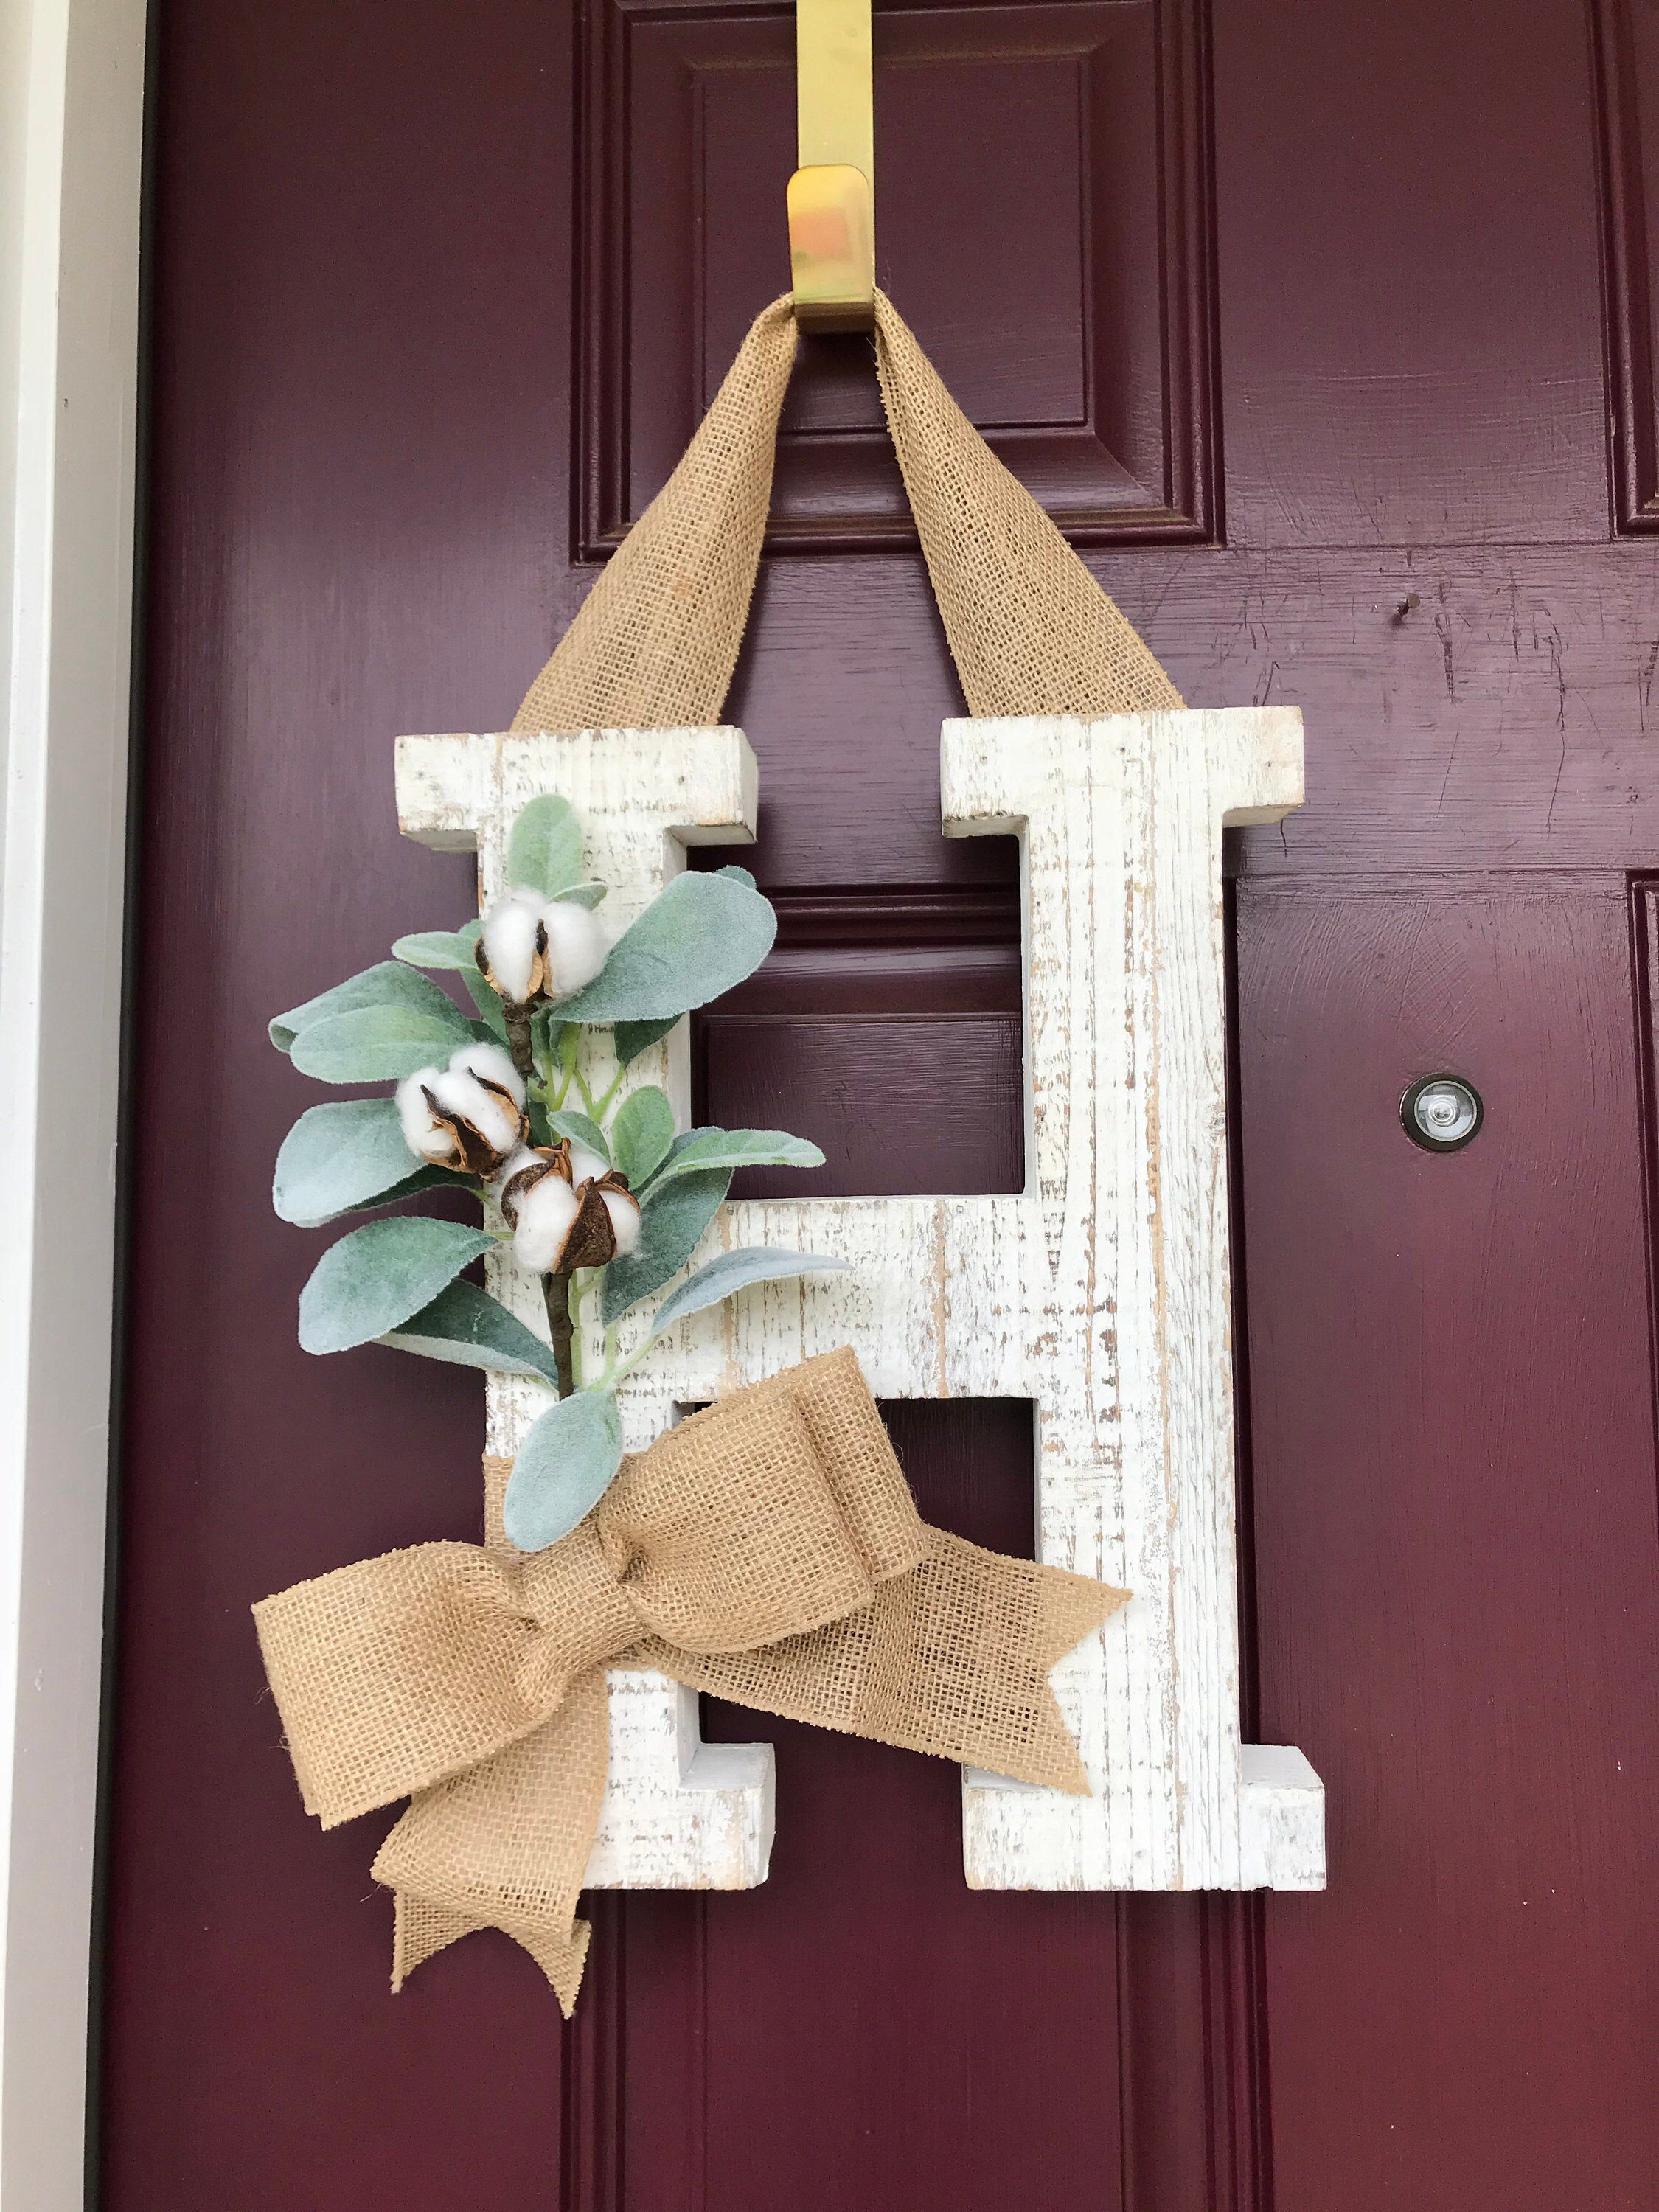 Farmhouse Wall Decor Whitewashed Letter Monogram Letter Wreath Home Decor Distressed Door Decor Front Door Decor With Images Front Door Wreaths Diy Door Wreaths Diy Farmhouse Wall Decor